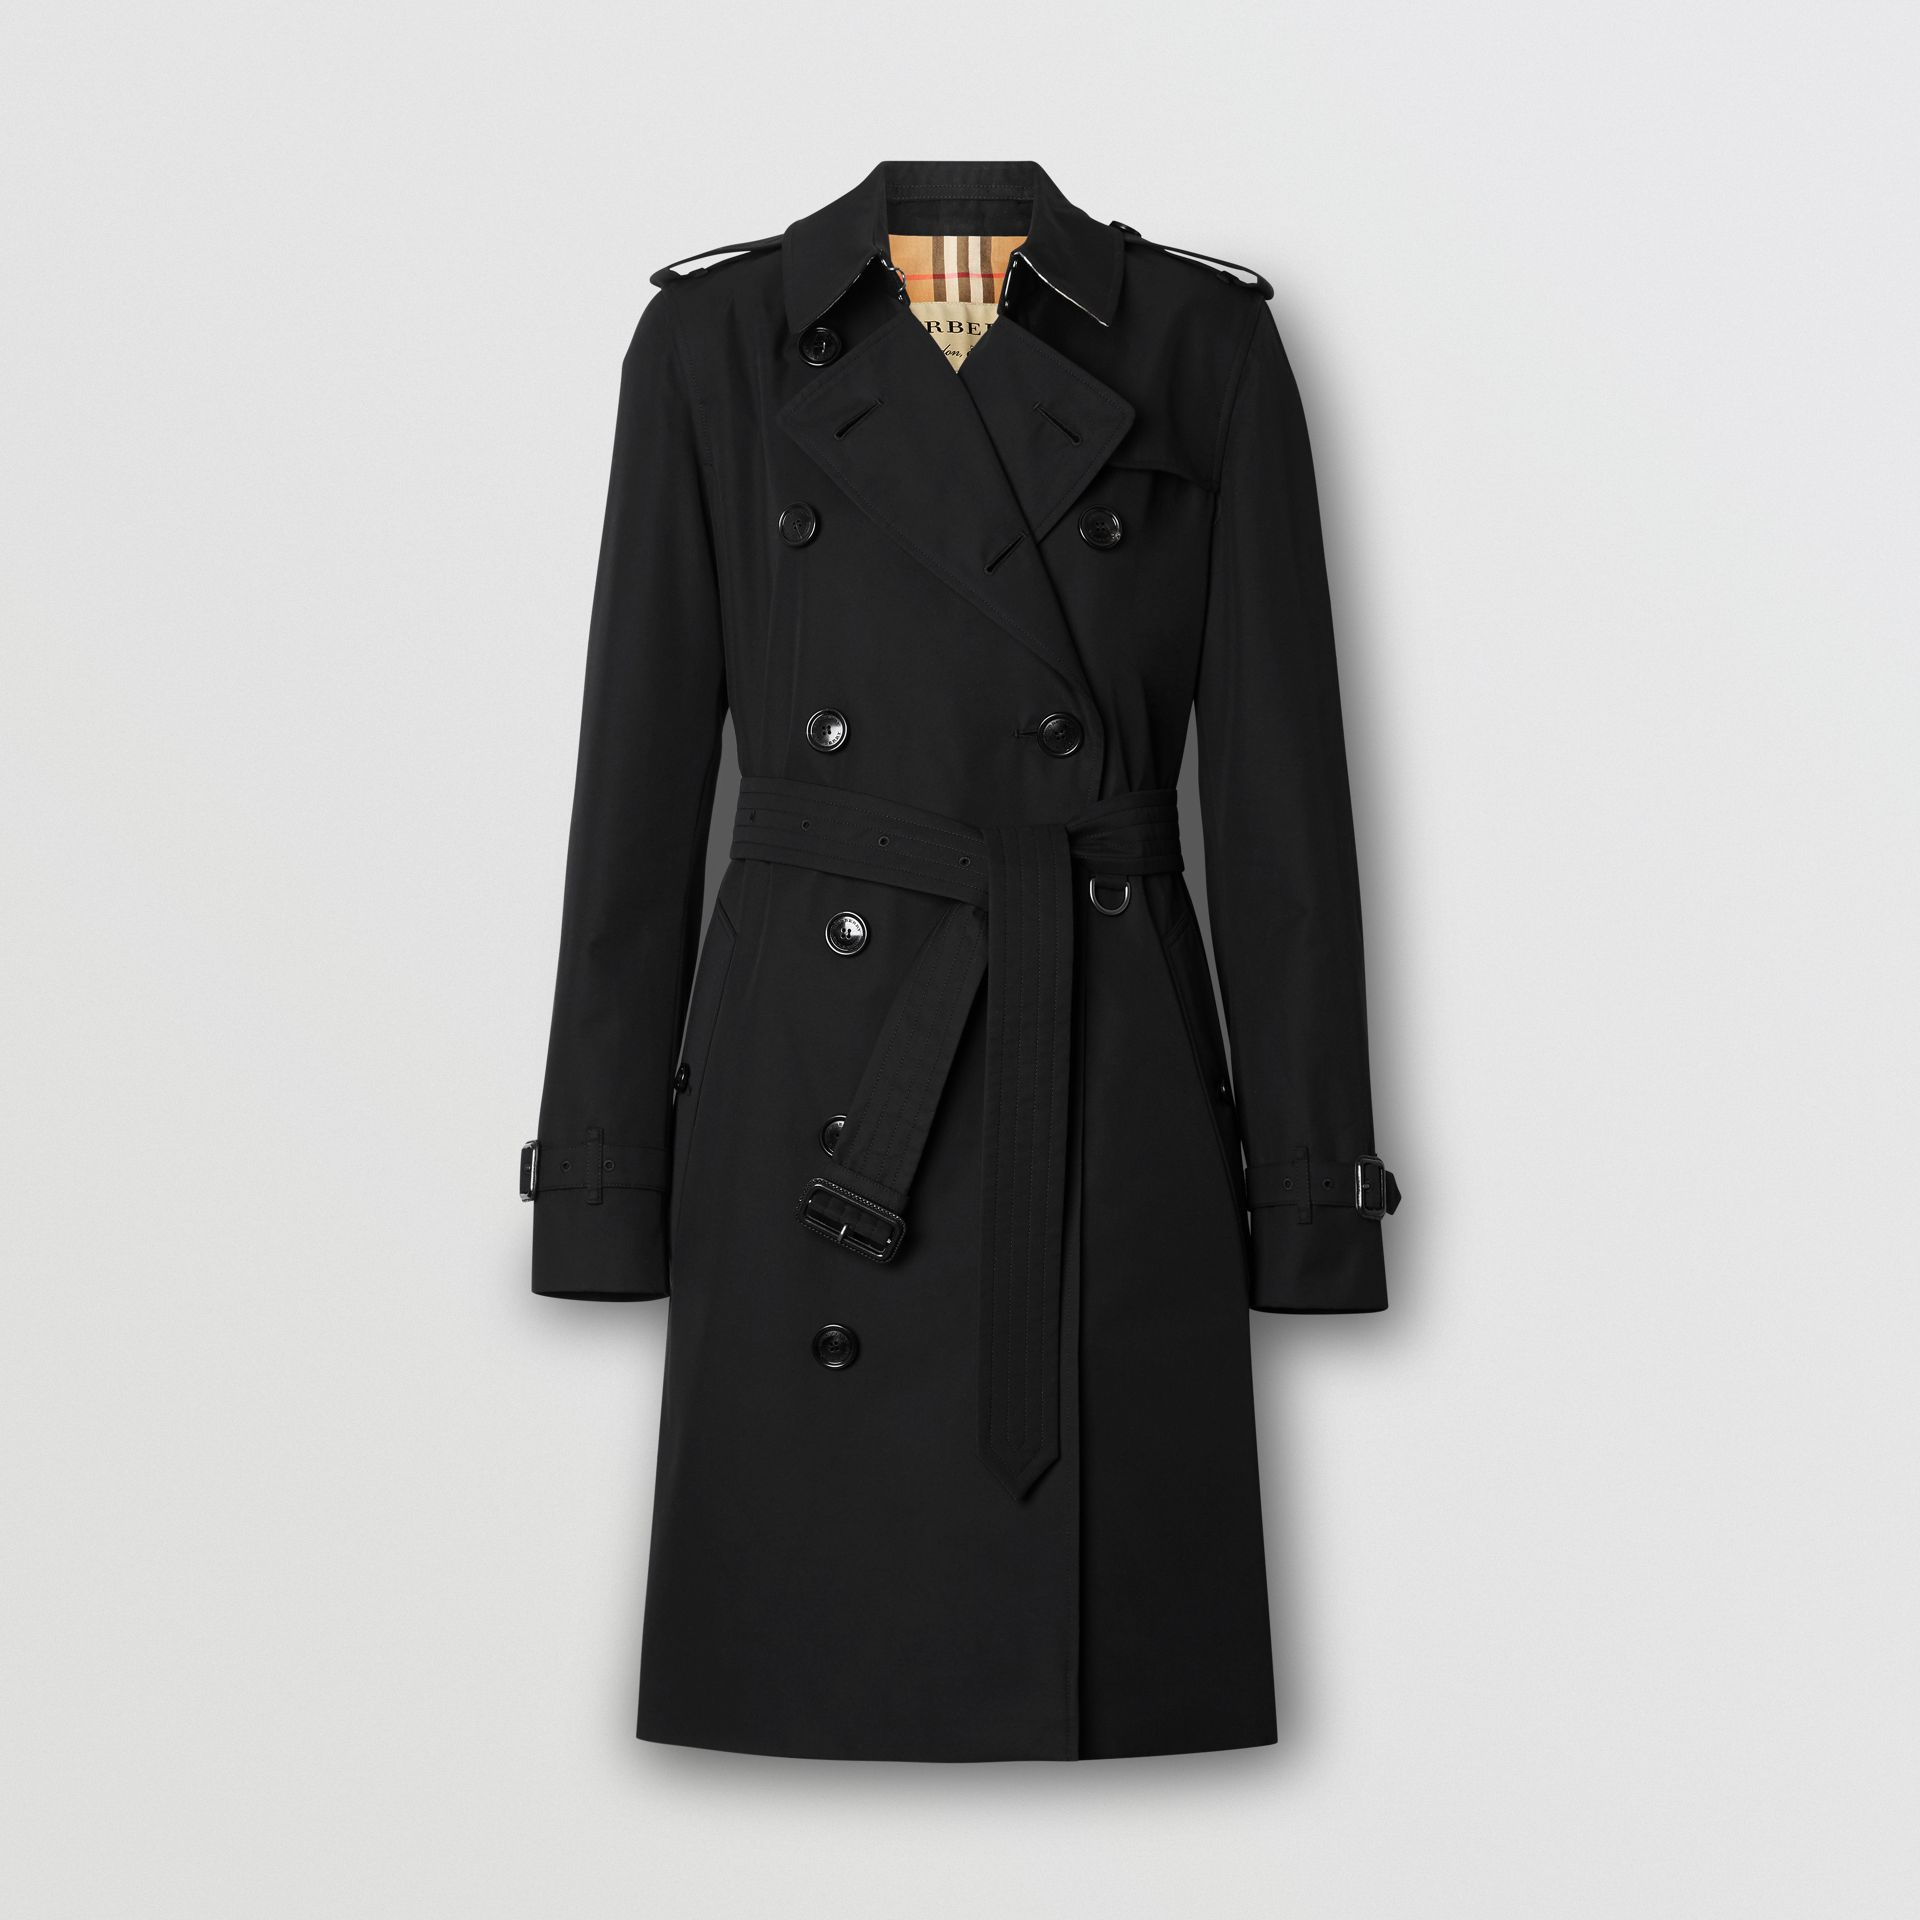 Kensington Fit Cotton Gabardine Trench Coat in Black - Women | Burberry Australia - gallery image 3